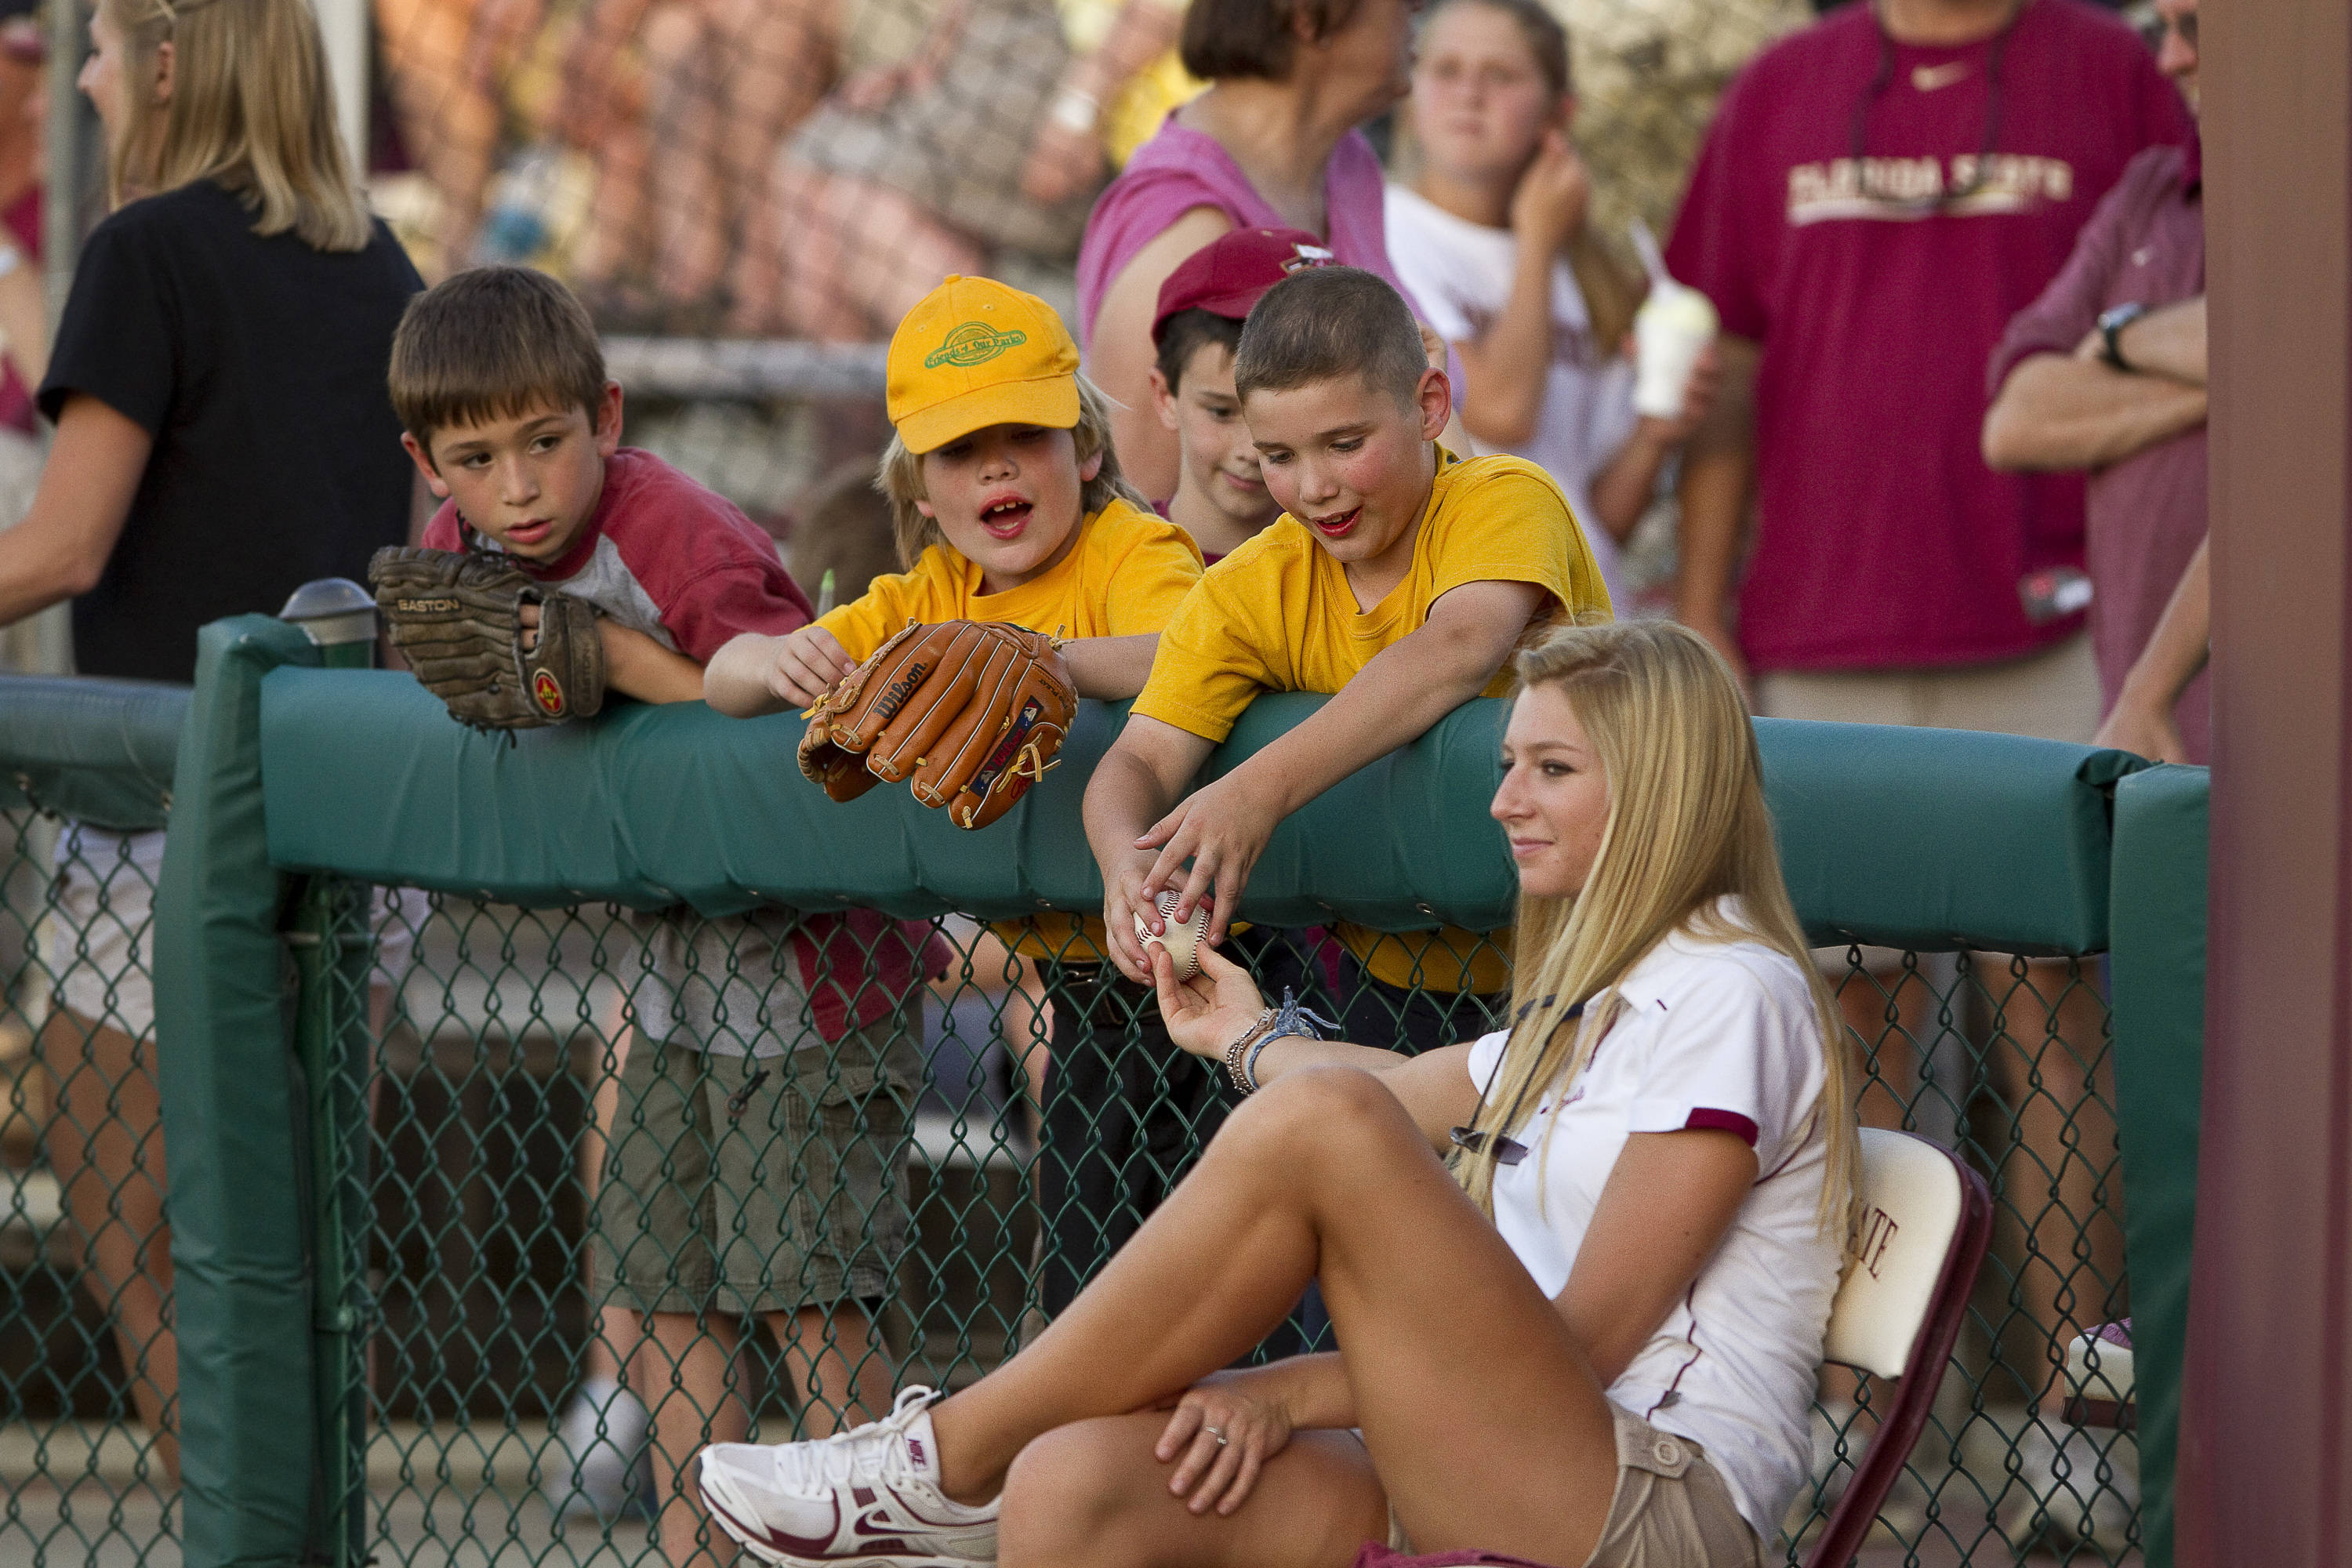 An FSU ball girl passes a foul ball to a group of young fans.